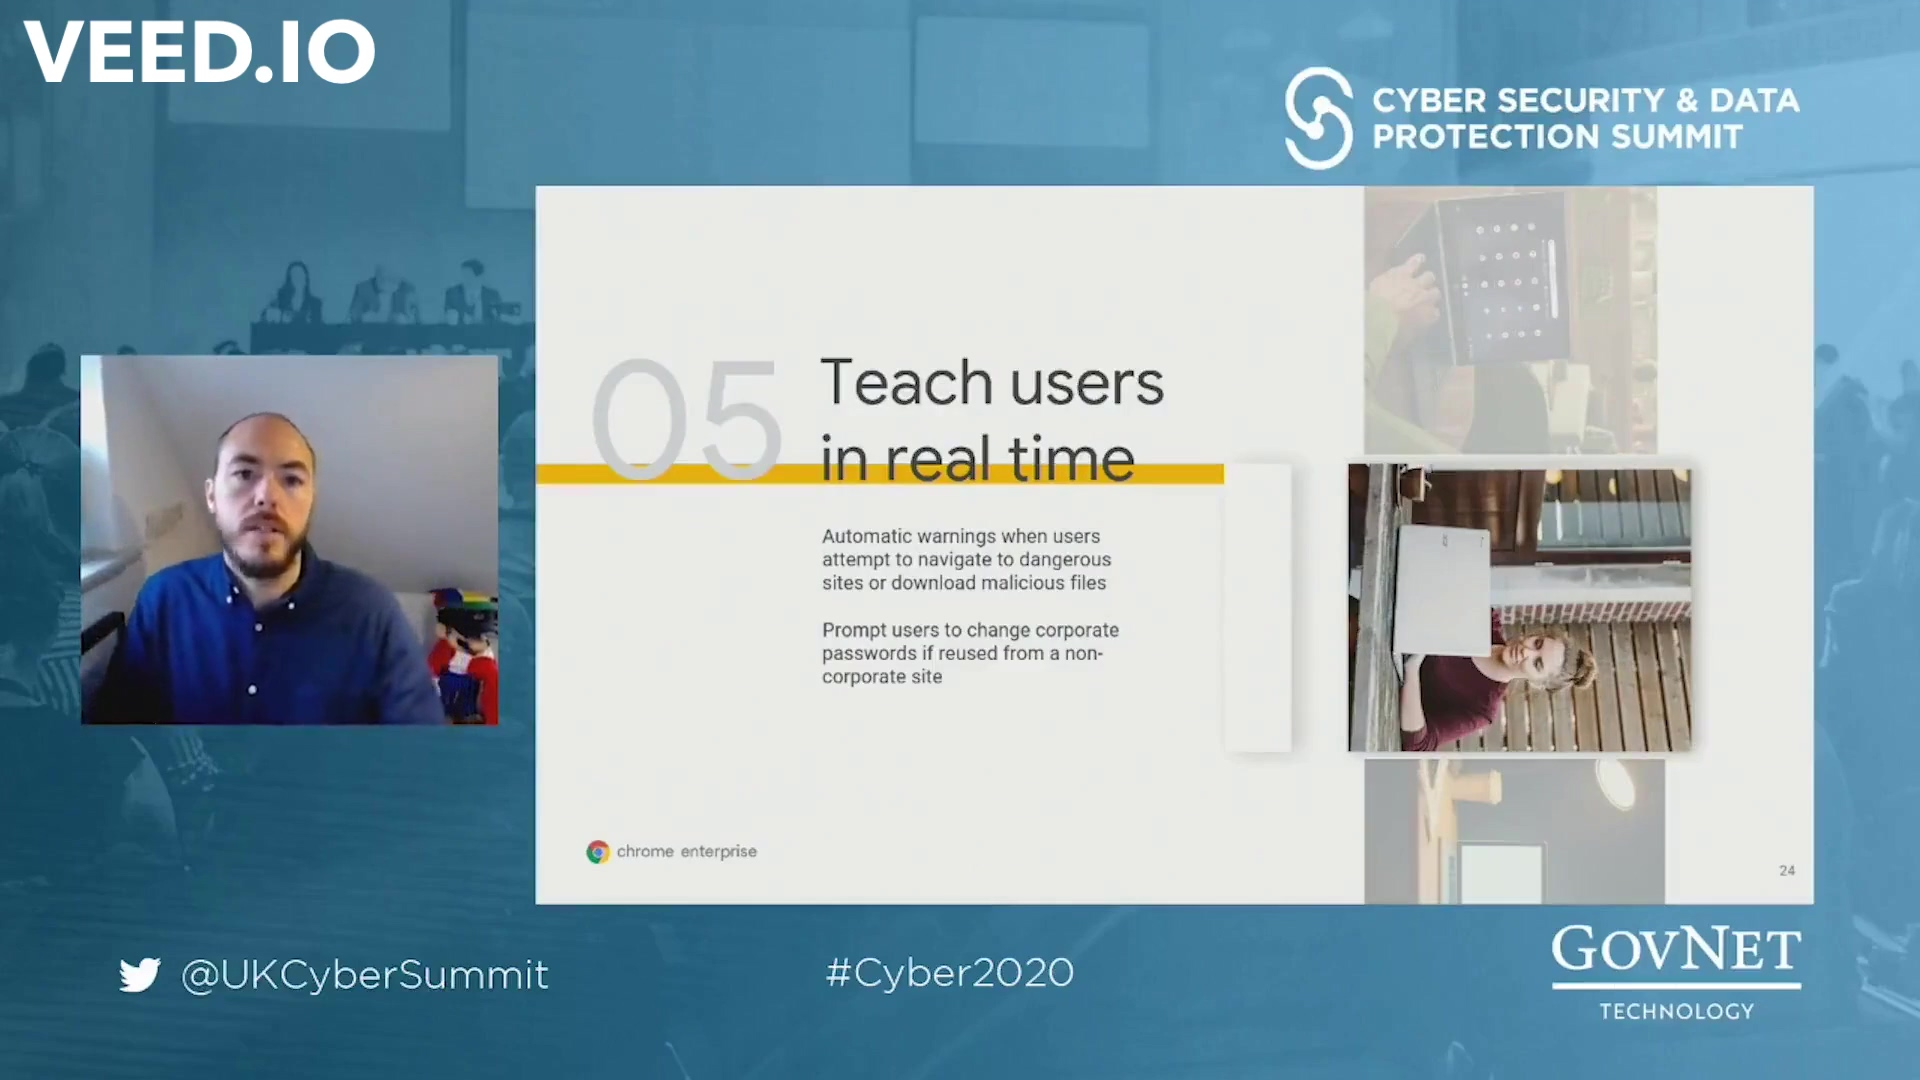 Cyber - Google - Teach users in real time